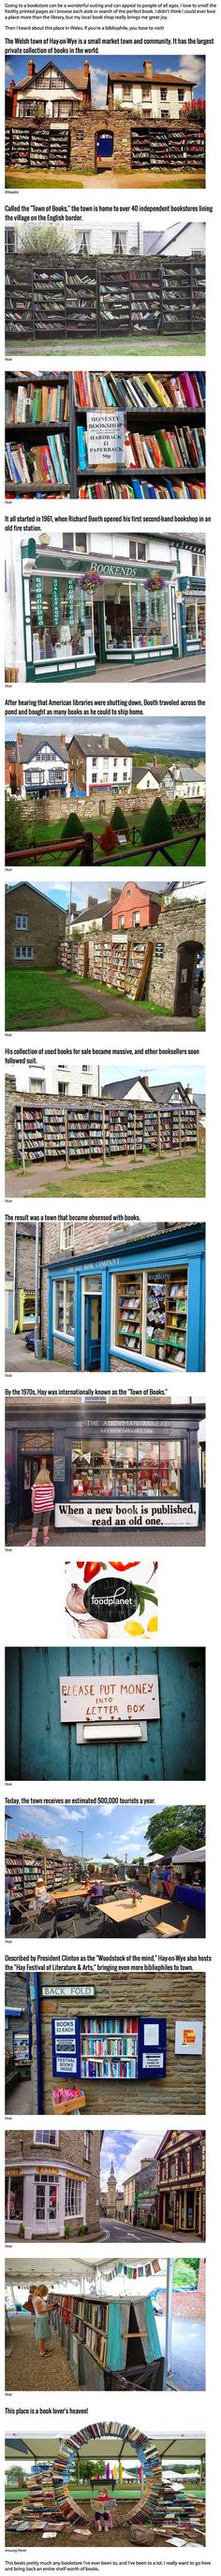 """Town of Books"" - Hay-on-Wye"